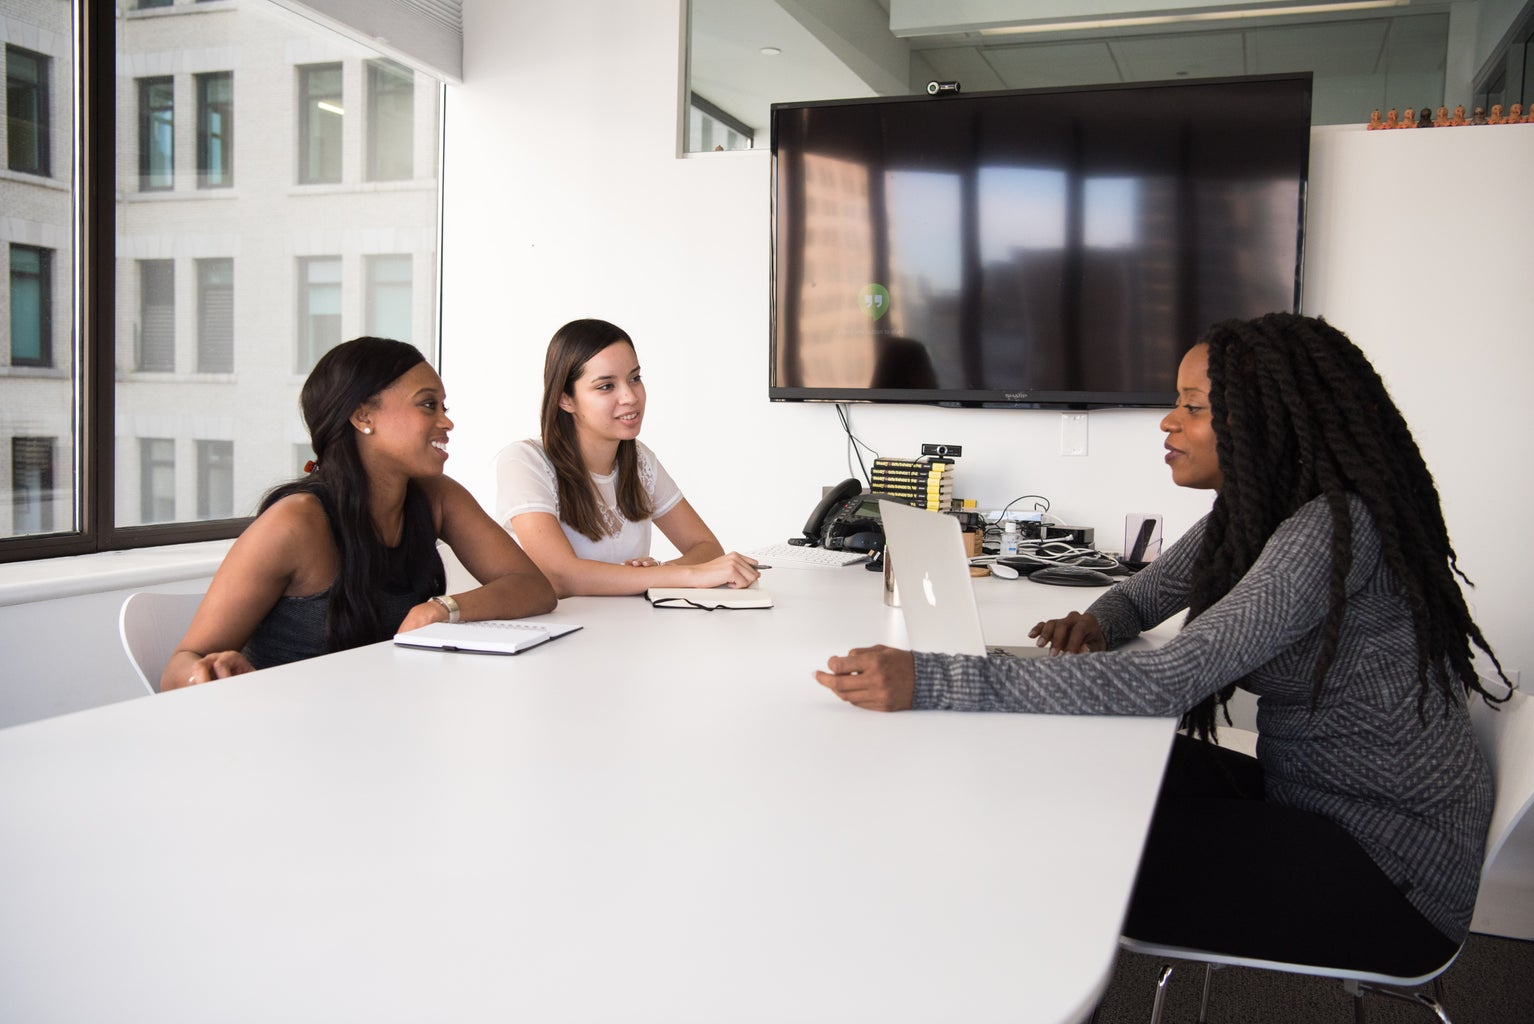 Three women of color are sitting at a table; two are on one side and  one is on the other with a laptop in front of her. They are in a conference room.